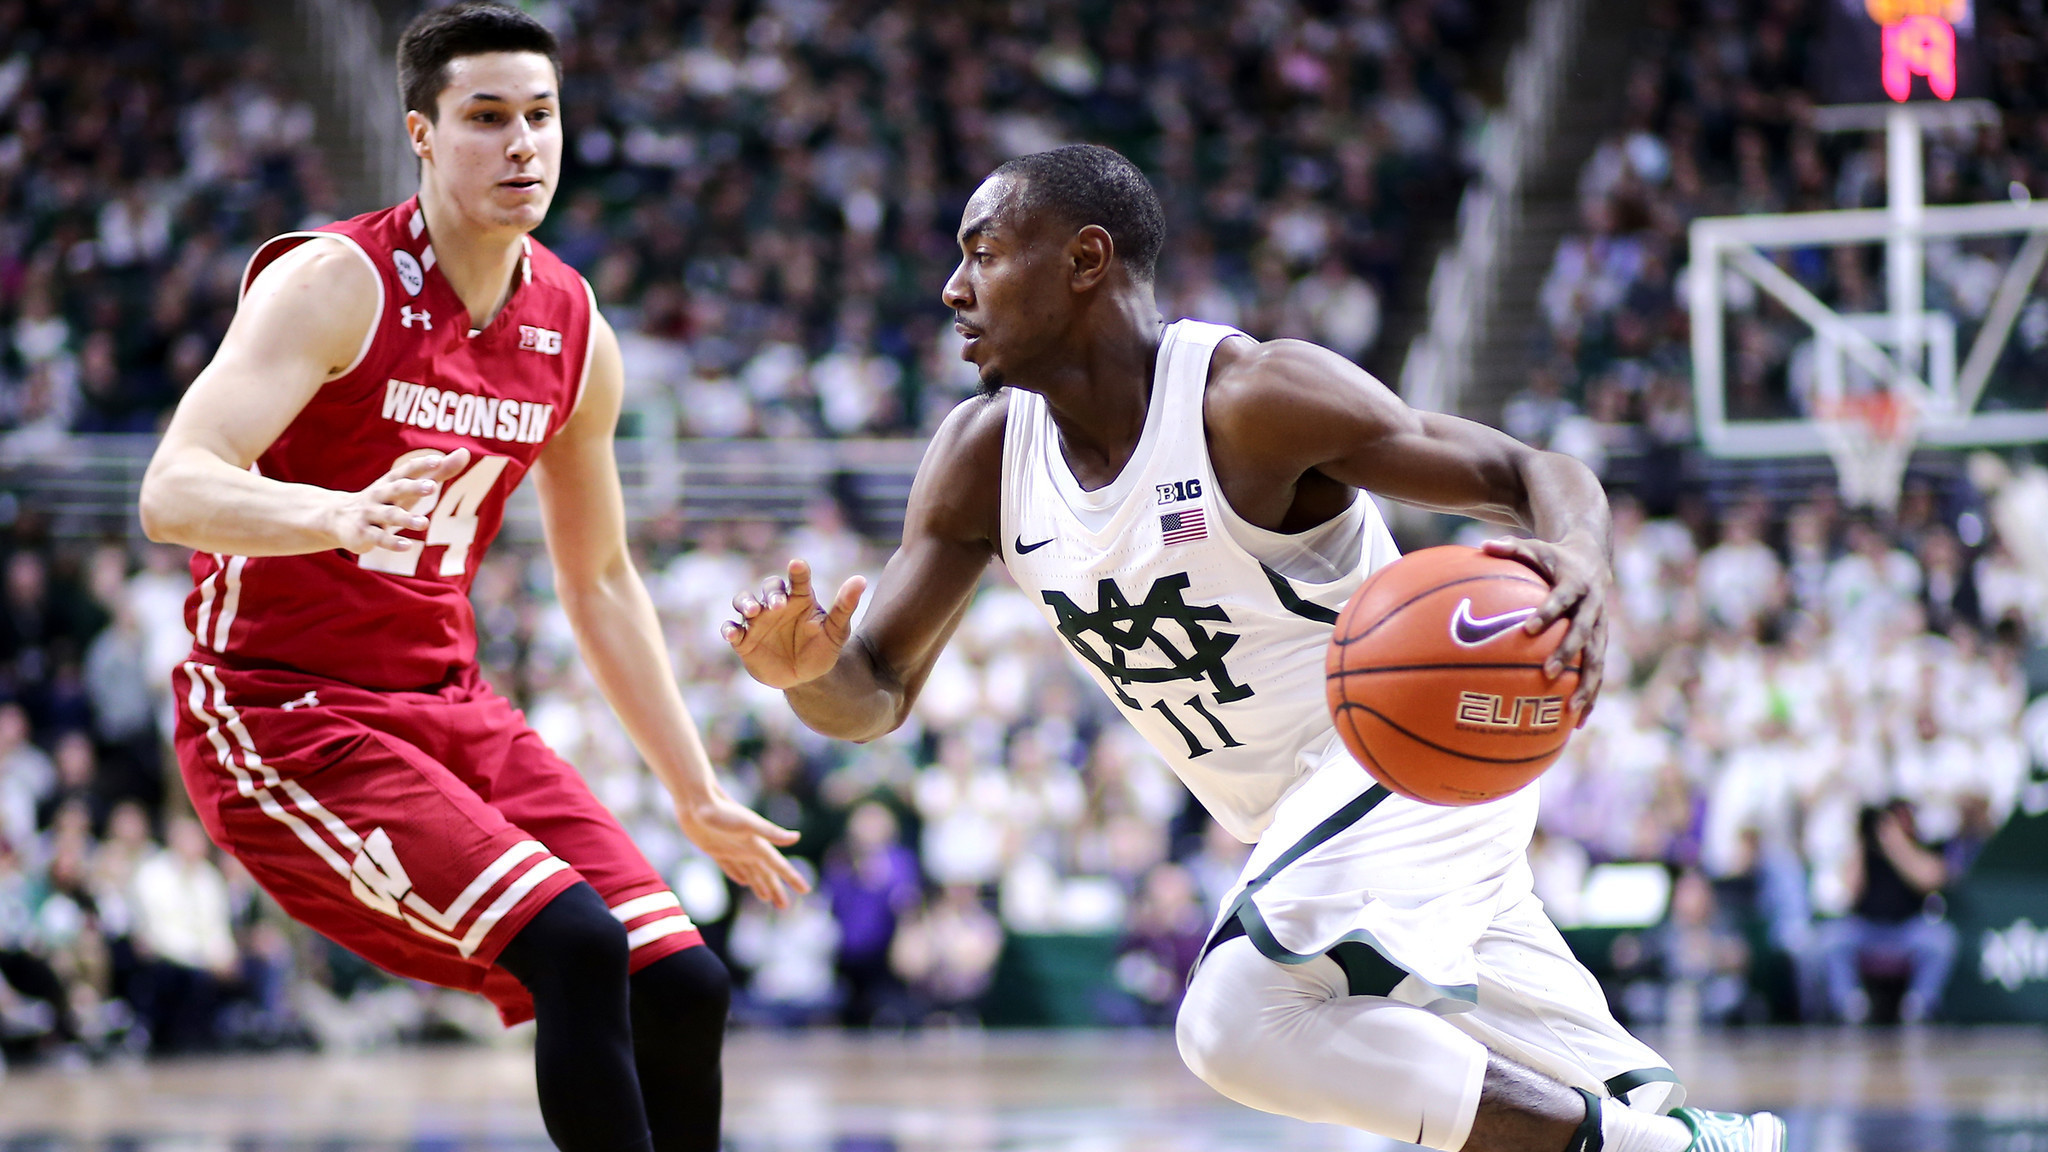 College basketball: Wisconsin drops another road game, falling to Michigan State